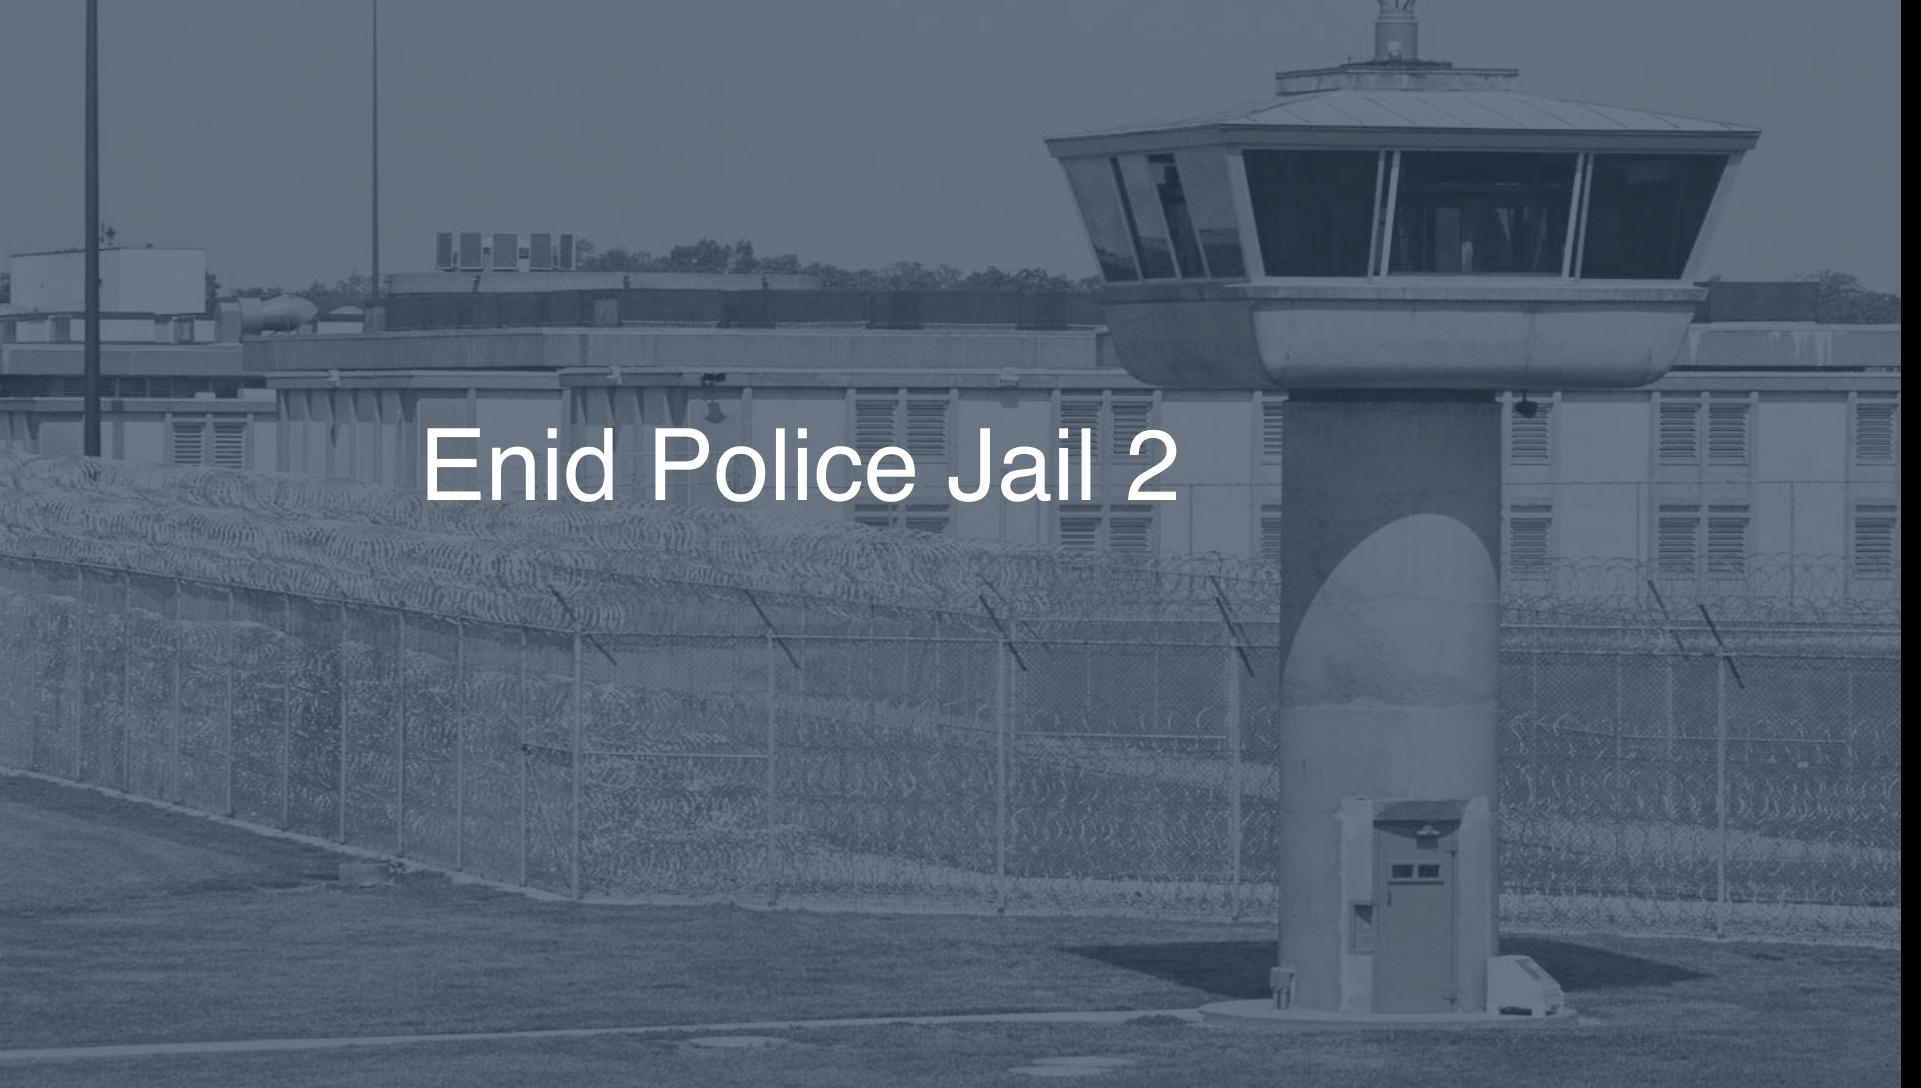 Enid Police Jail correctional facility picture